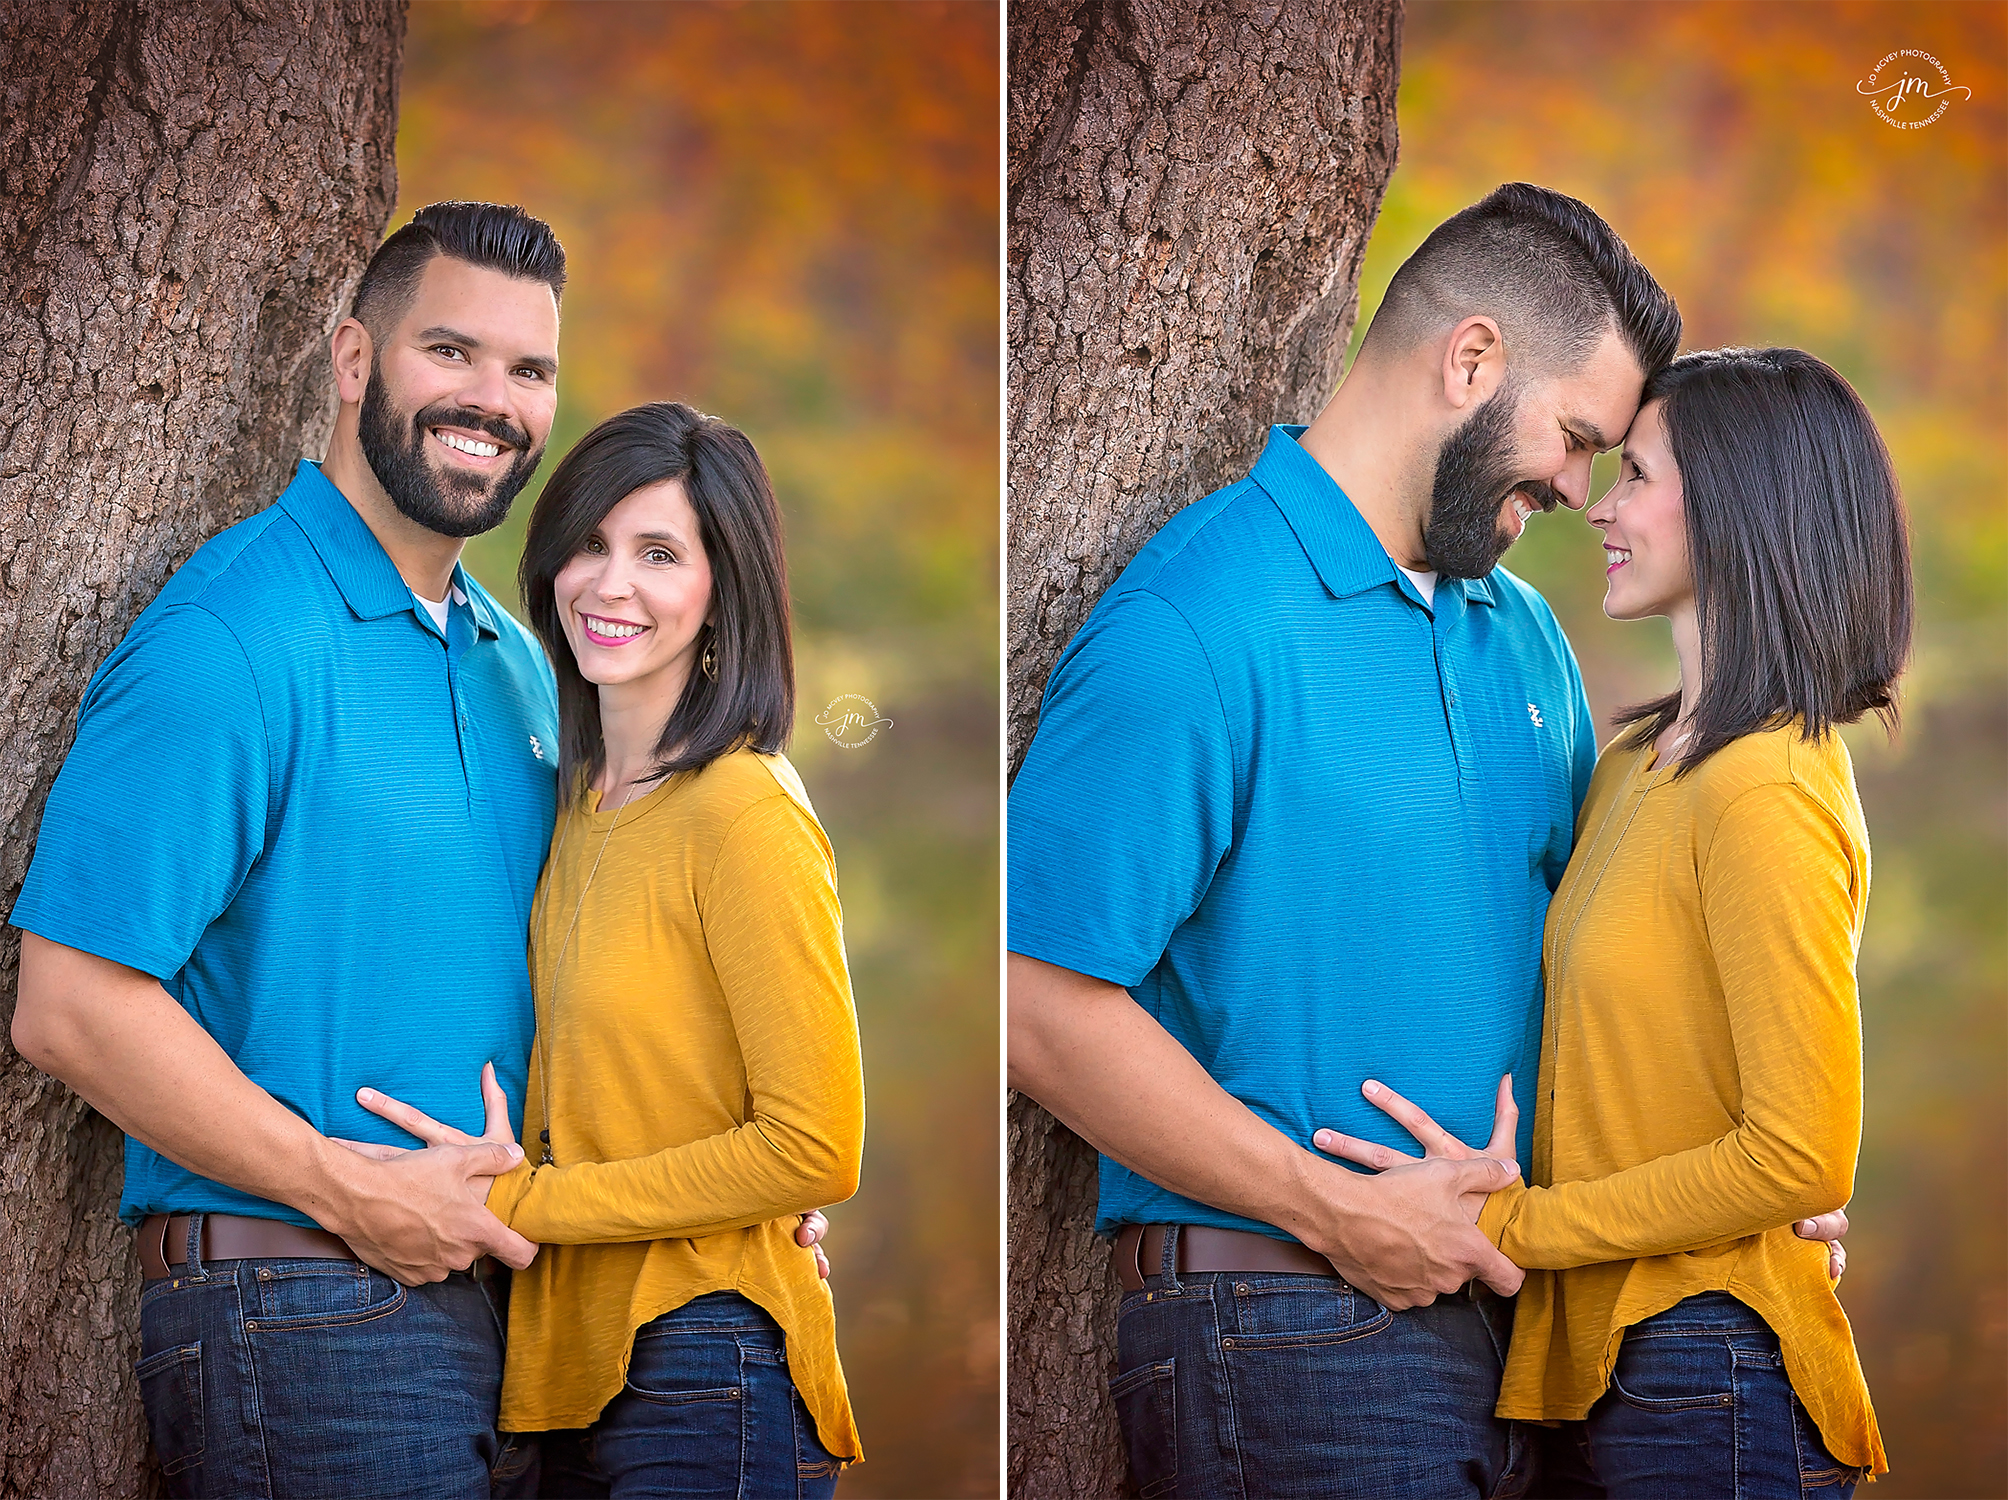 Autumn husband and wife - Gallatin Portrait Photographer | Jo McVey Photography